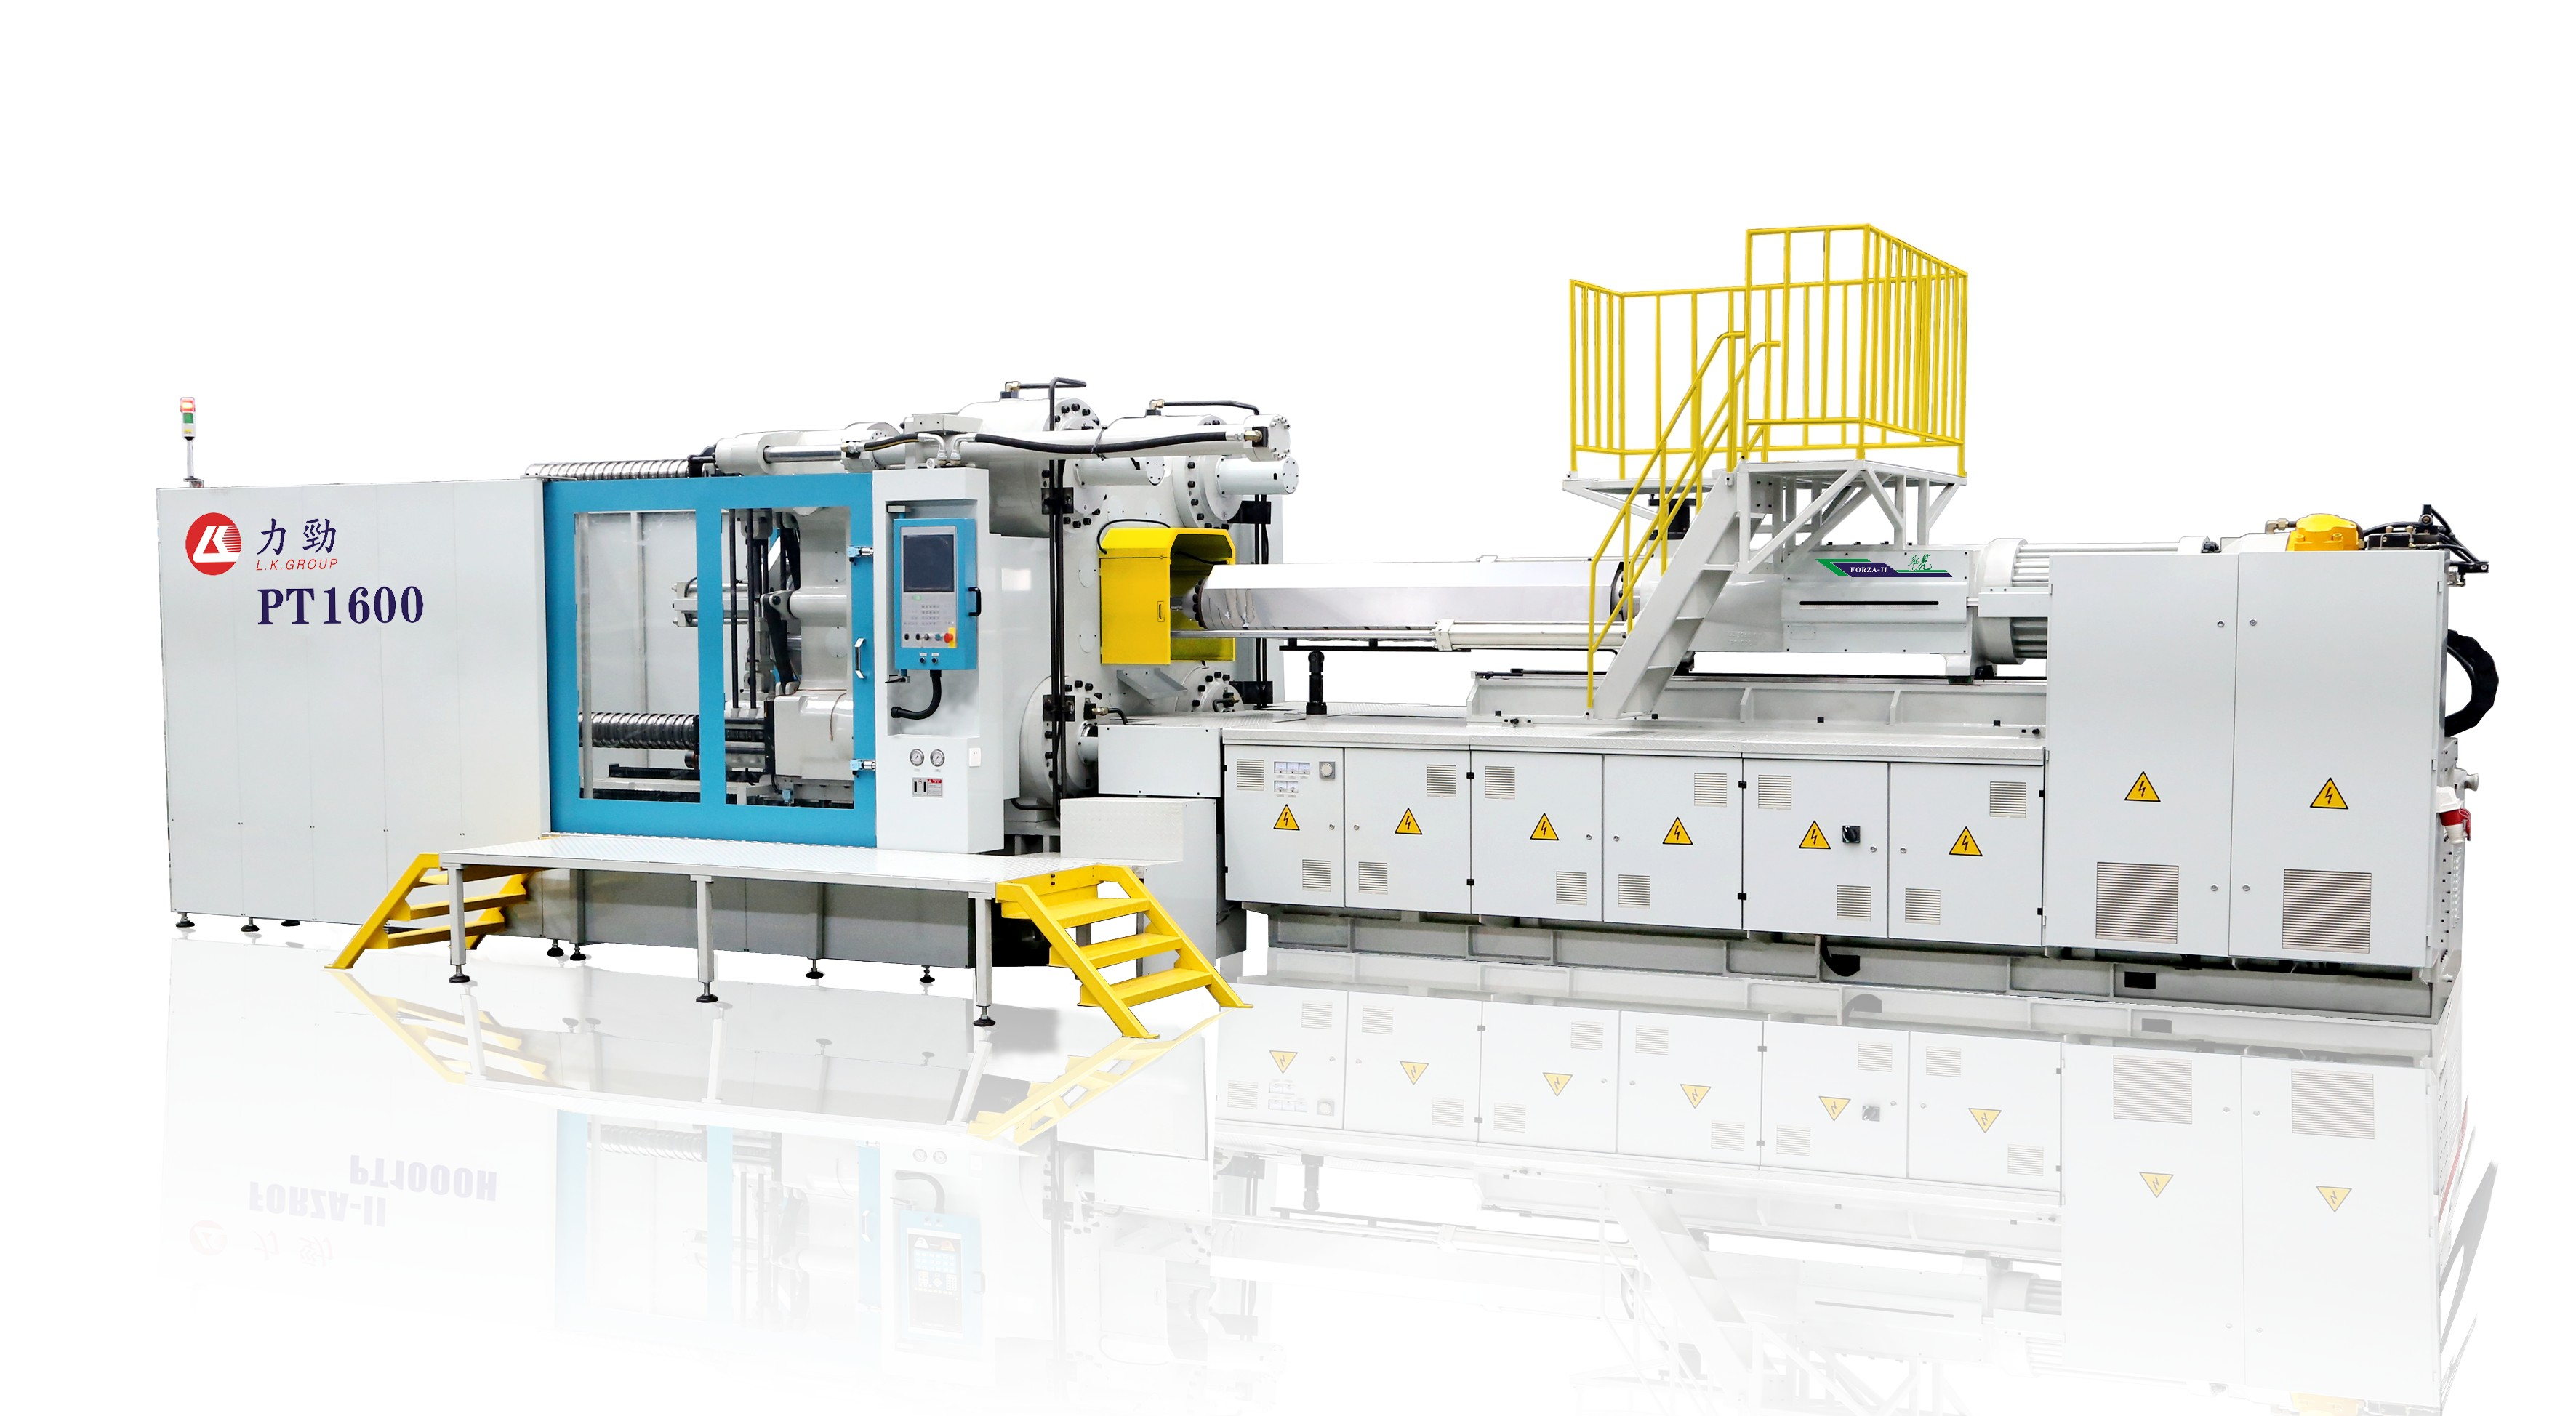 Plastic Injection Molding Machines | LK Group